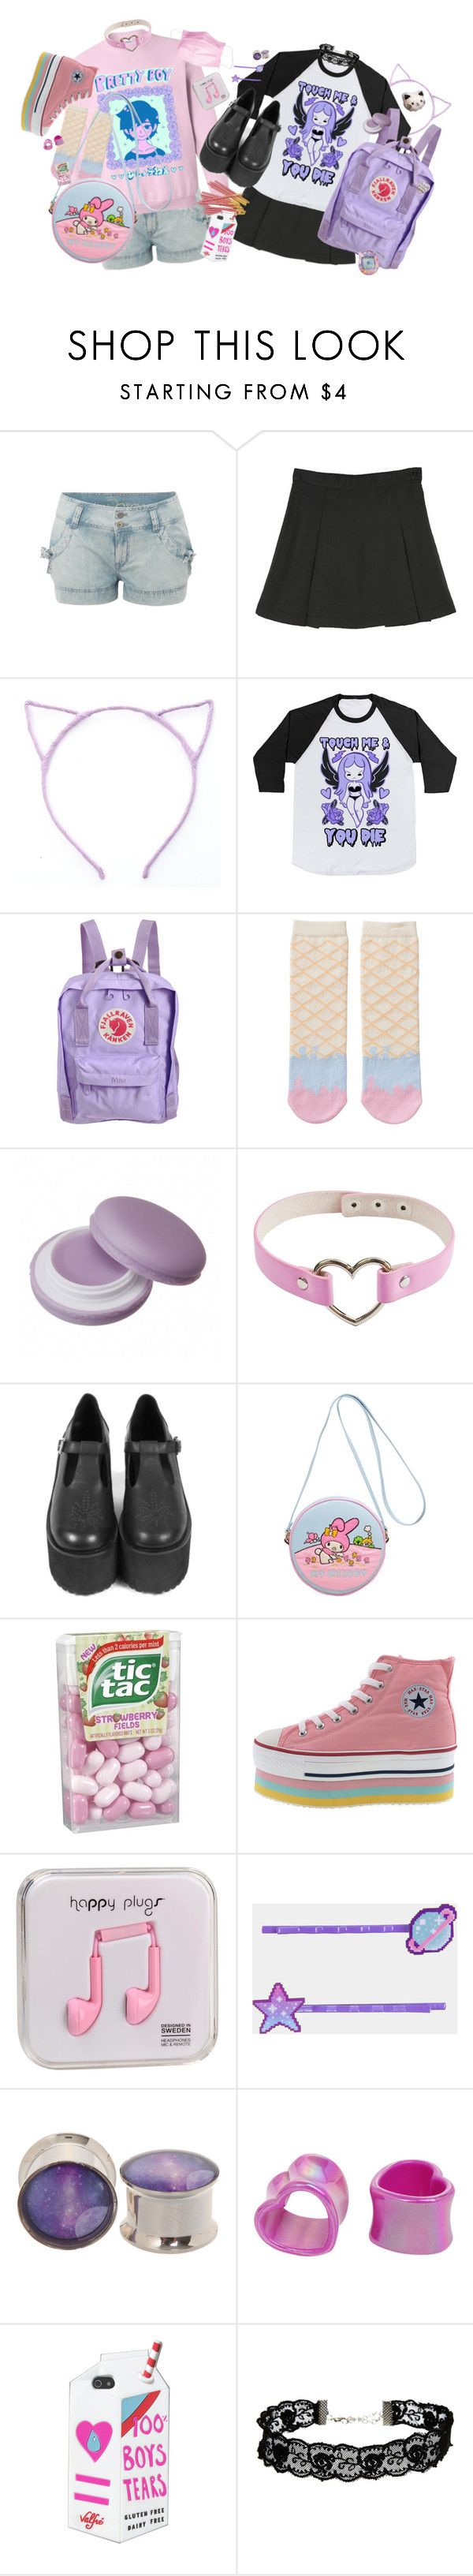 """Fairy and goth"" by bandaidkid ❤ liked on Polyvore featuring Fjällräven, Monki, Olympia Le-Tan, Happy Plugs, Valfré, ASOS, pastel, pastelgoth, kawaii en harajuku"